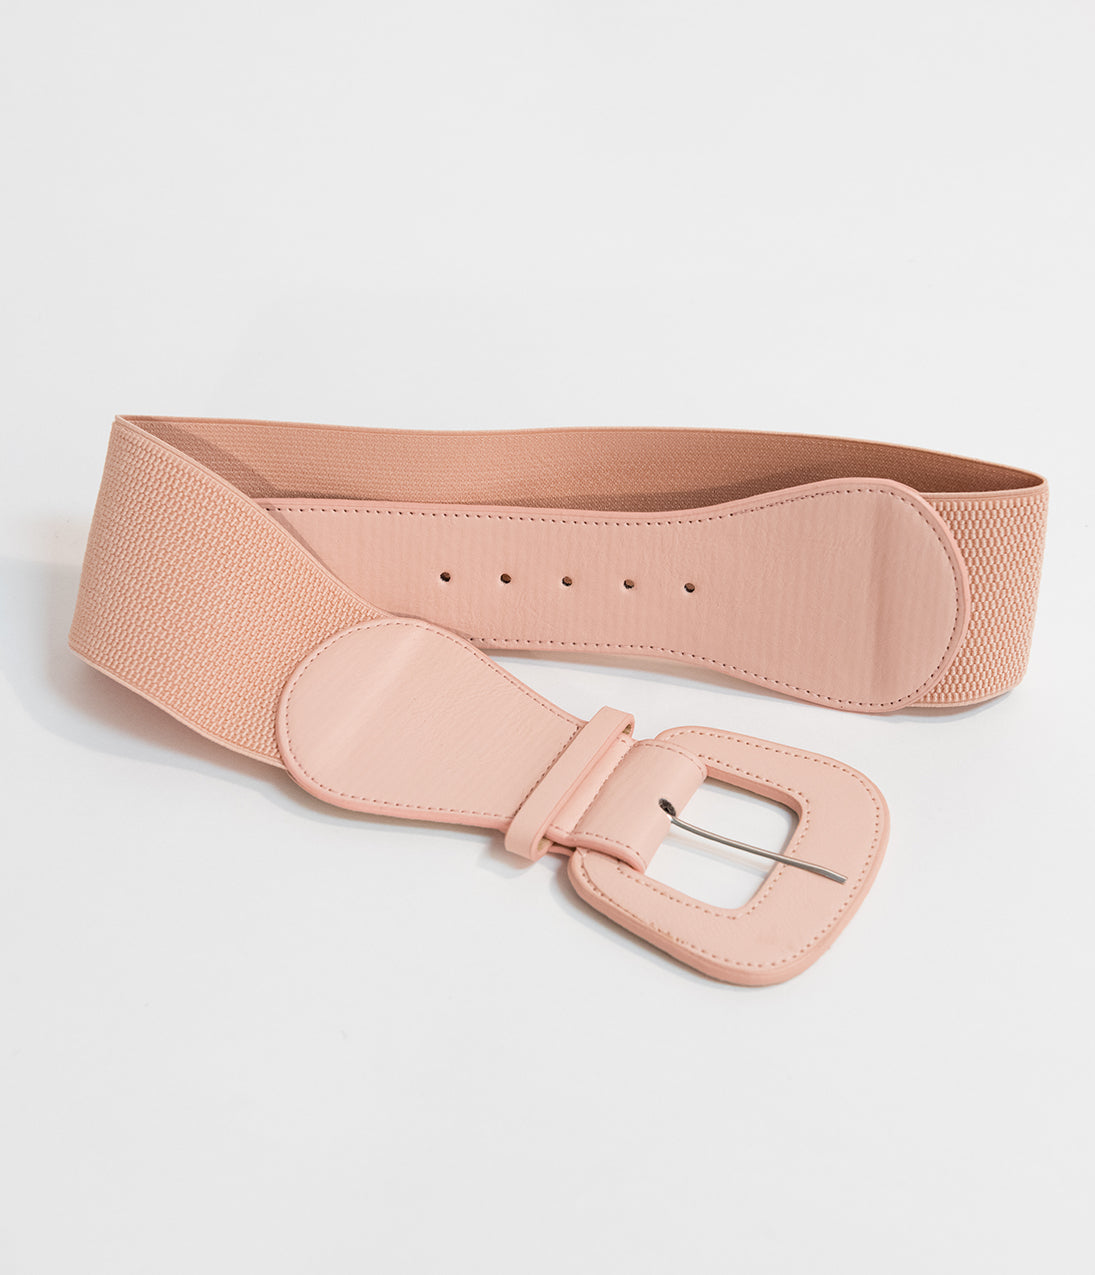 dd8cf489cc Vintage Wide Belts